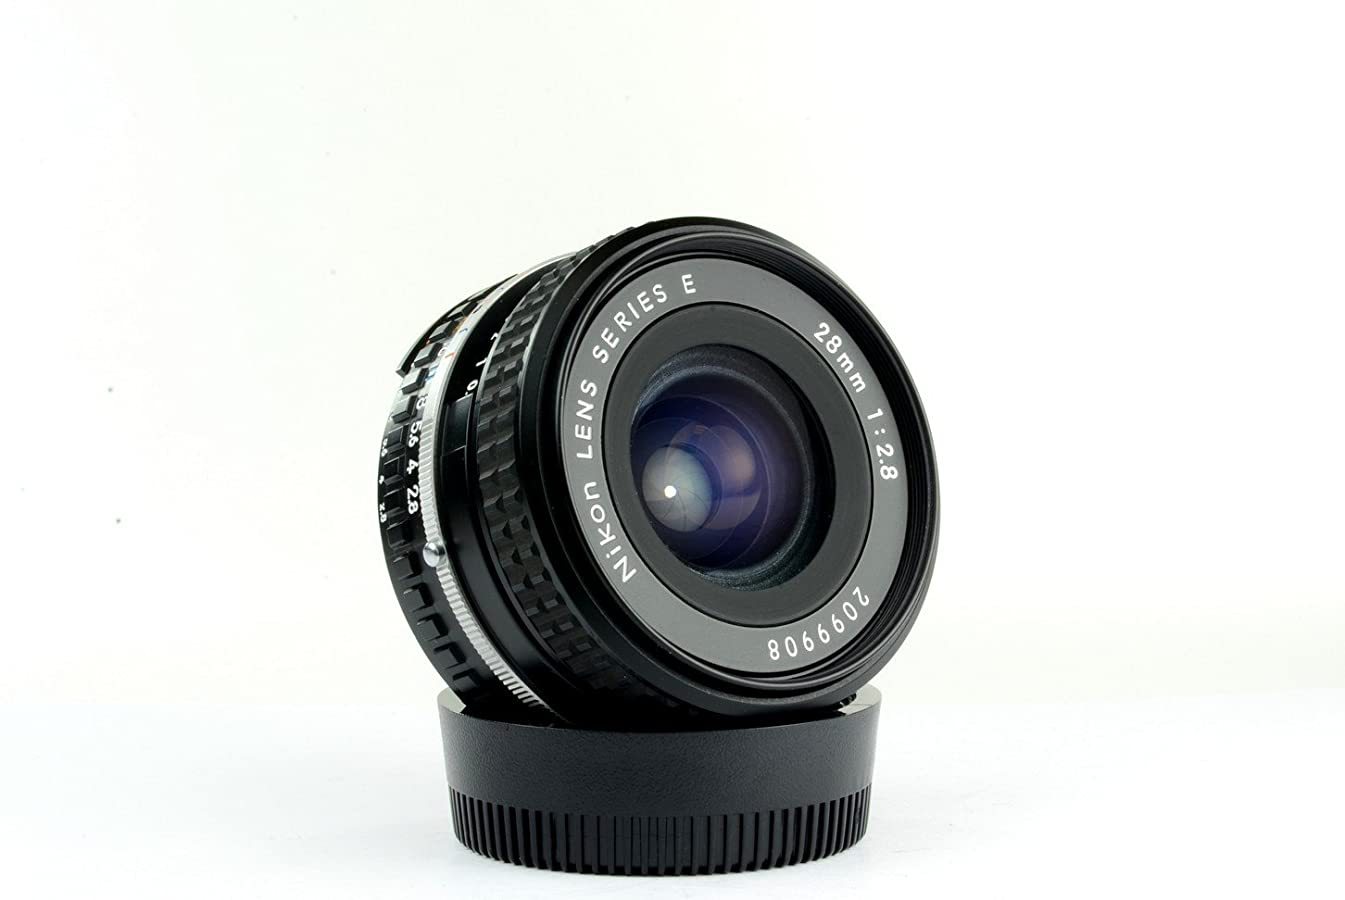 Nikon 28mm f/2.8 series E AIS lens